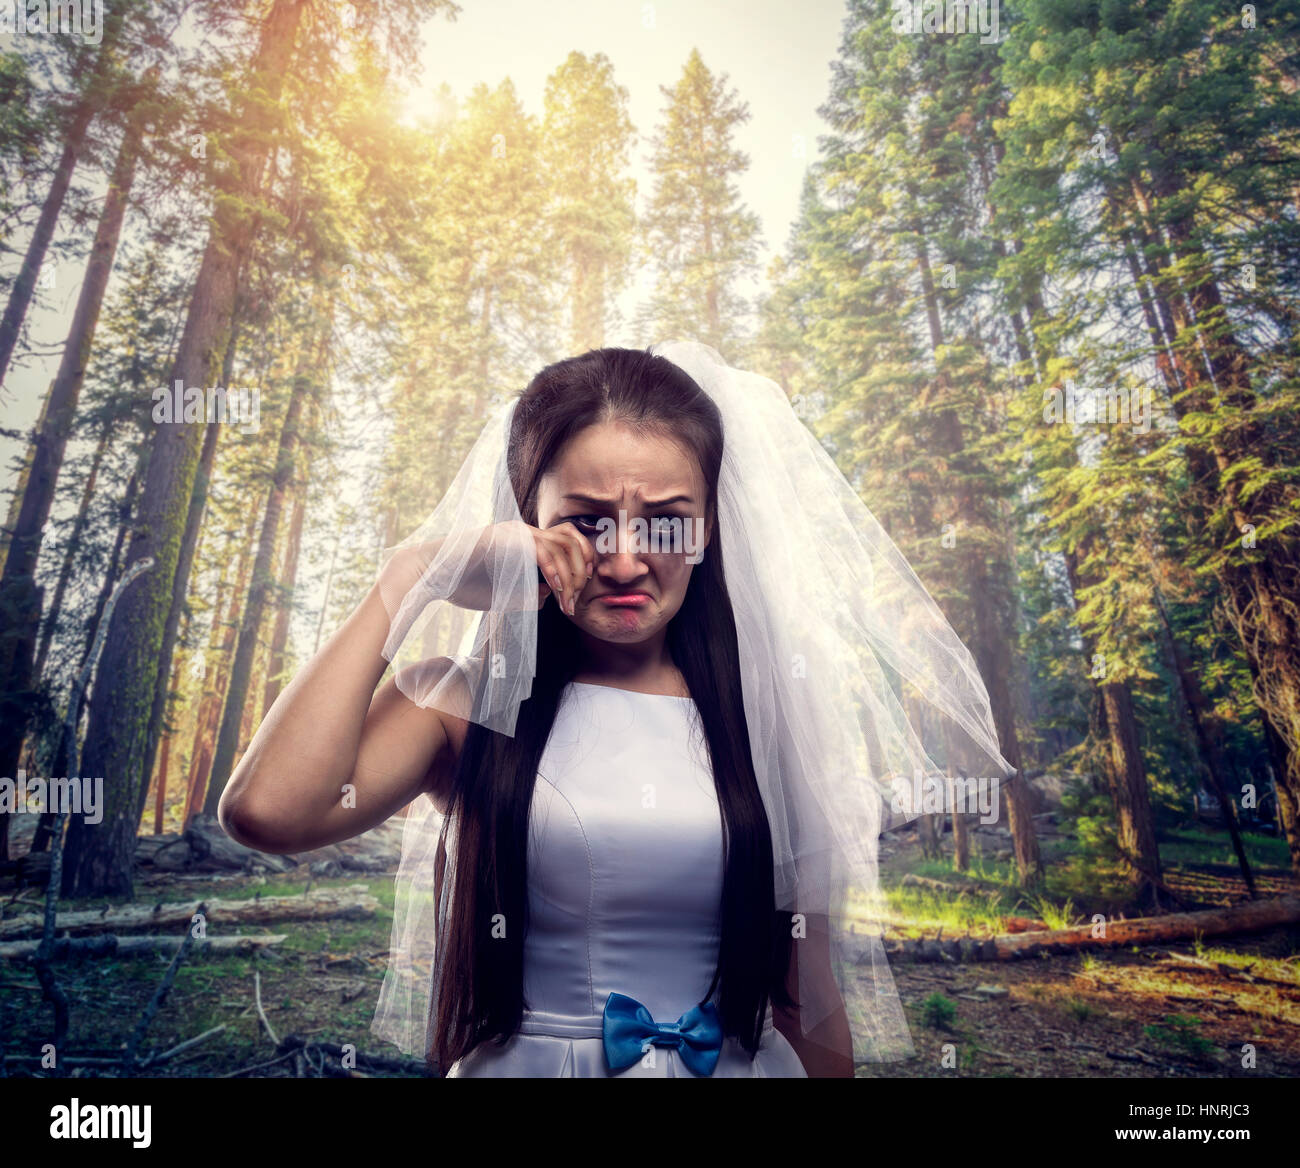 Bride with tearful face, pine forest on background. Unhappy marriage - Stock Image